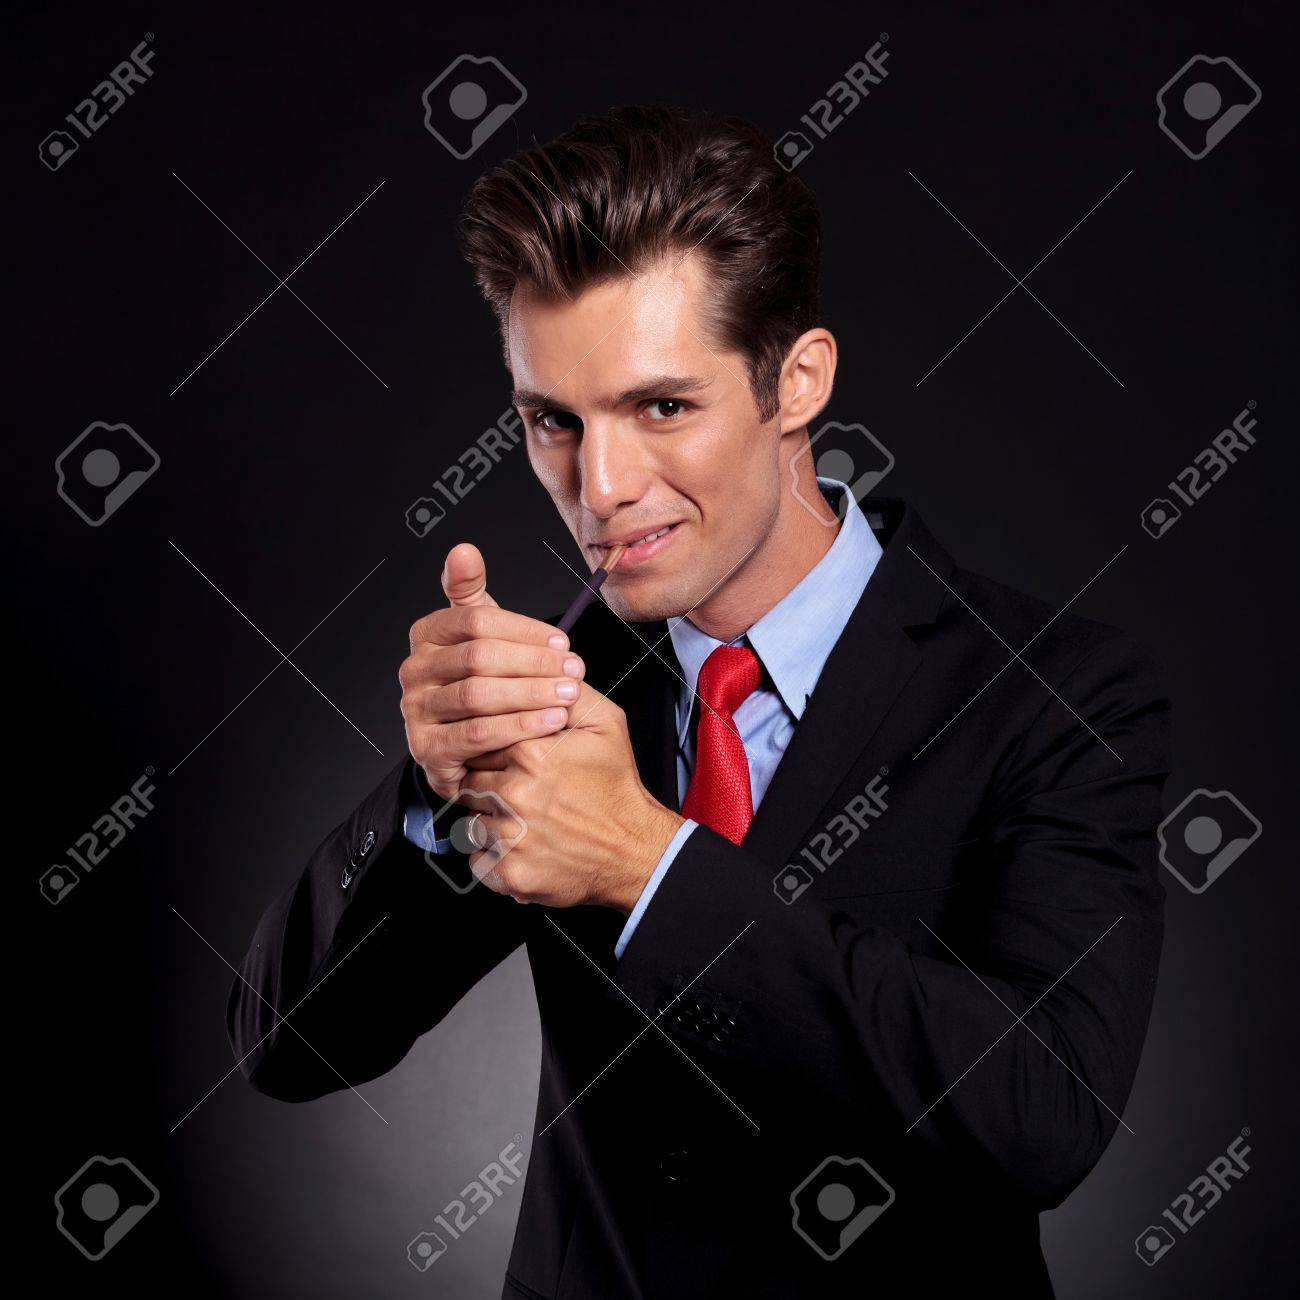 portrait of a young business man standing against a black background and lighting up a cigarette  sc 1 st  123RF Stock Photos & Portrait Of A Young Business Man Standing Against A Black ... azcodes.com